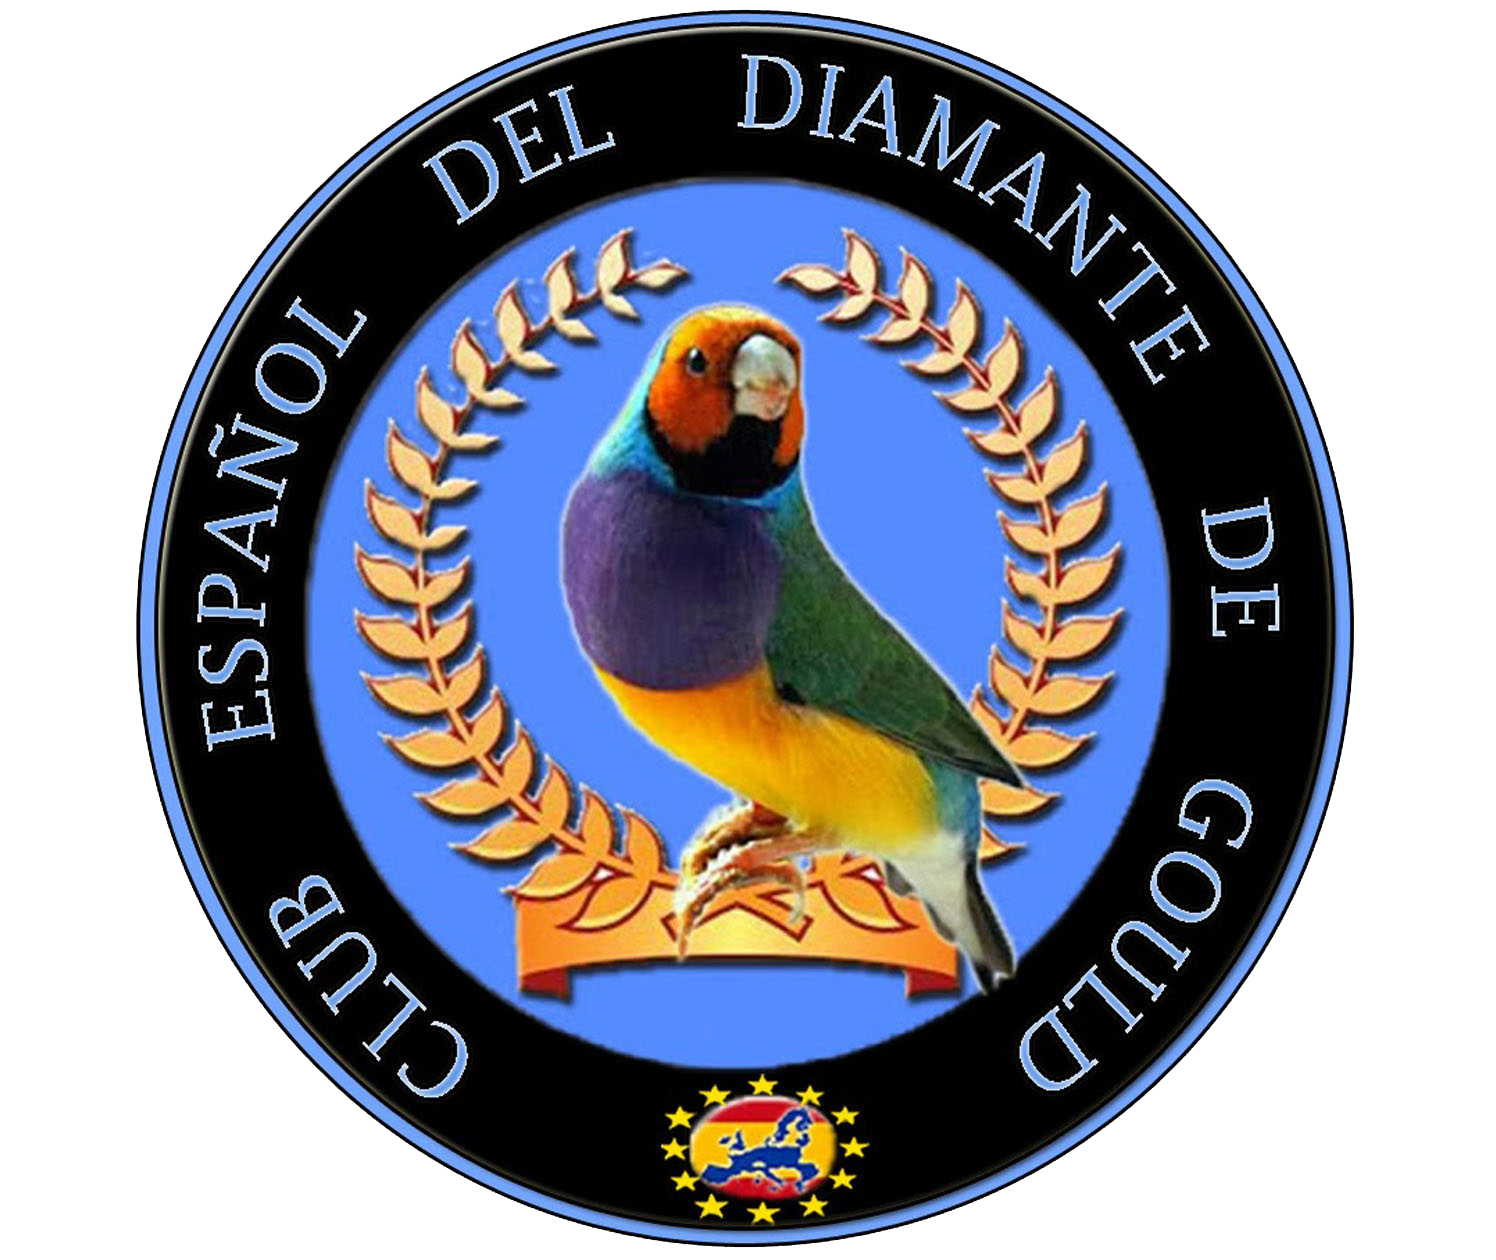 Club Diamante de Gould